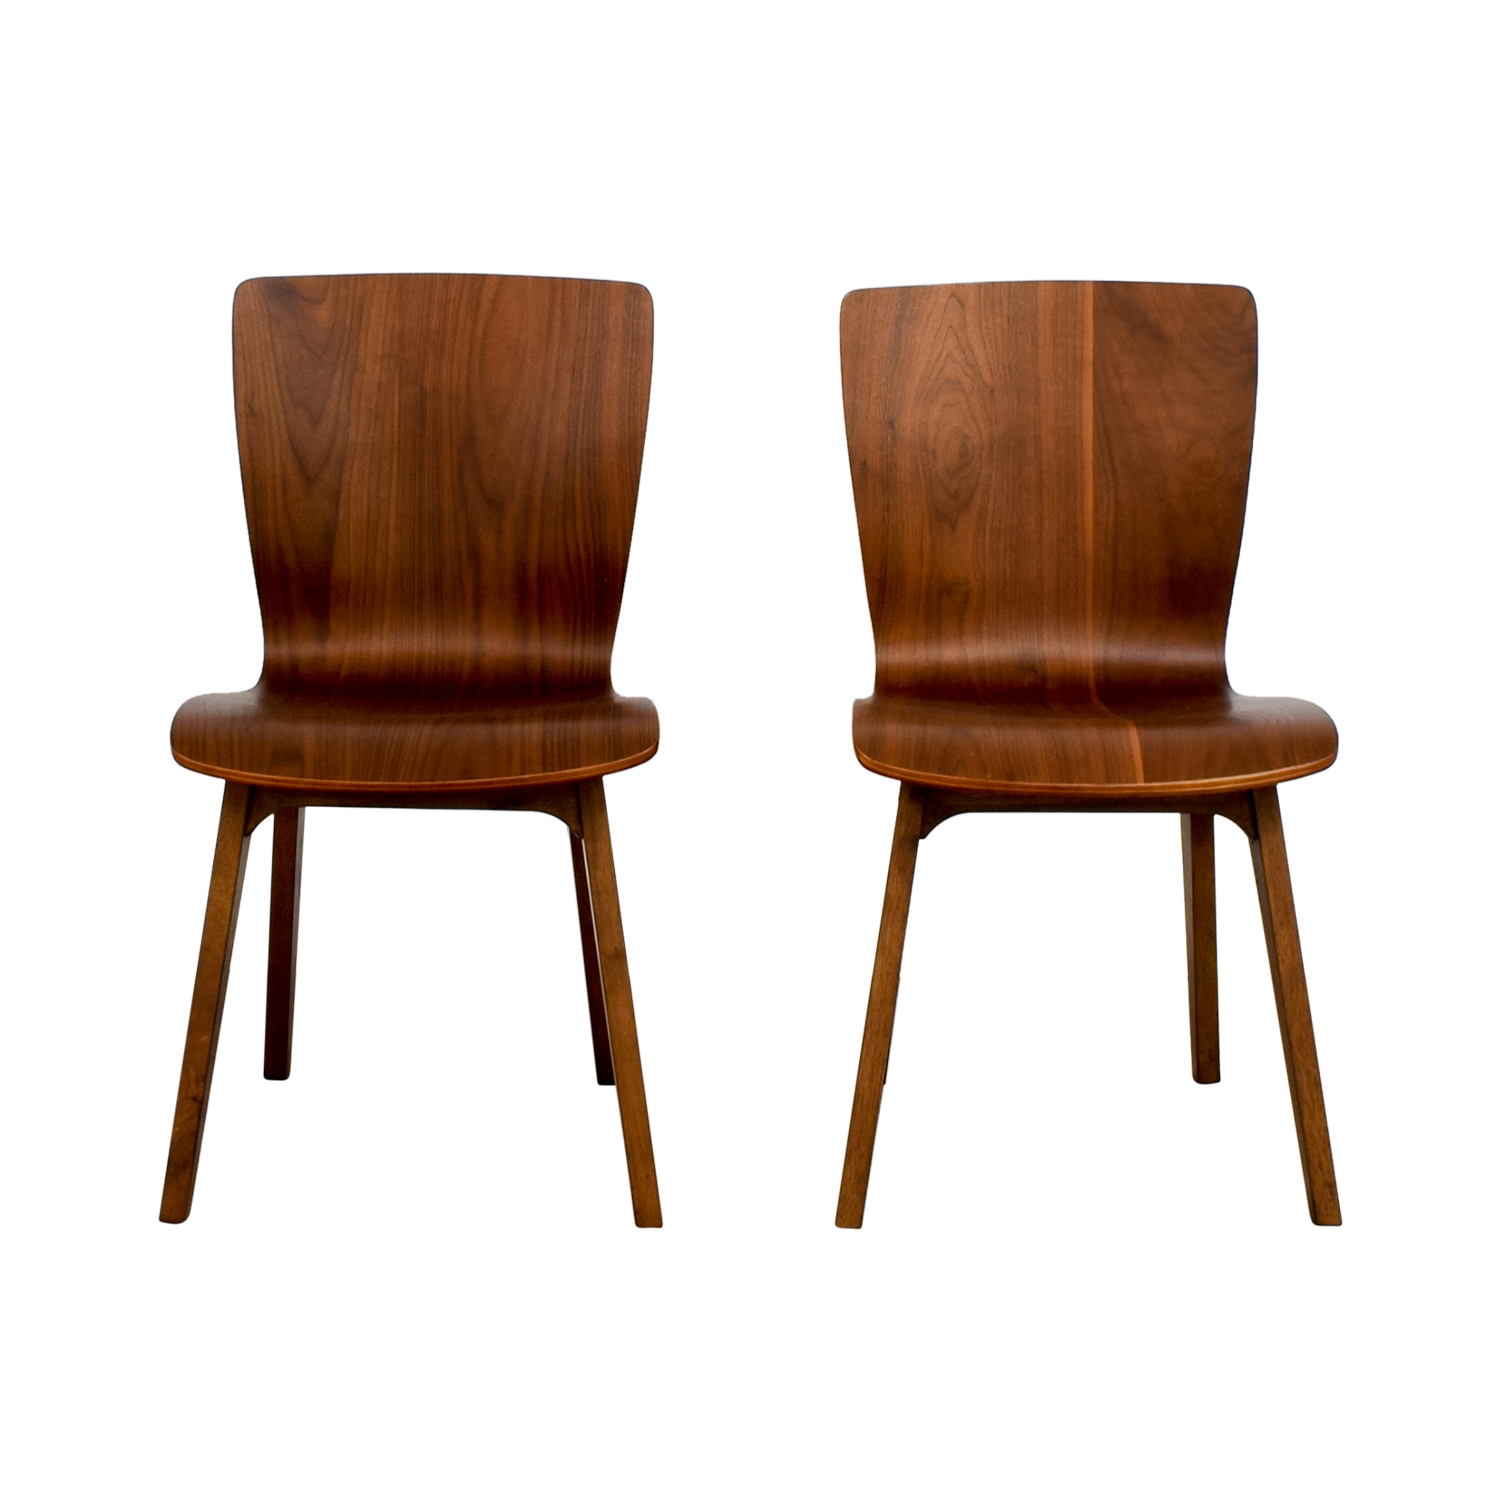 56% OFF   West Elm West Elm Crest Brentwood Chairs / Chairs